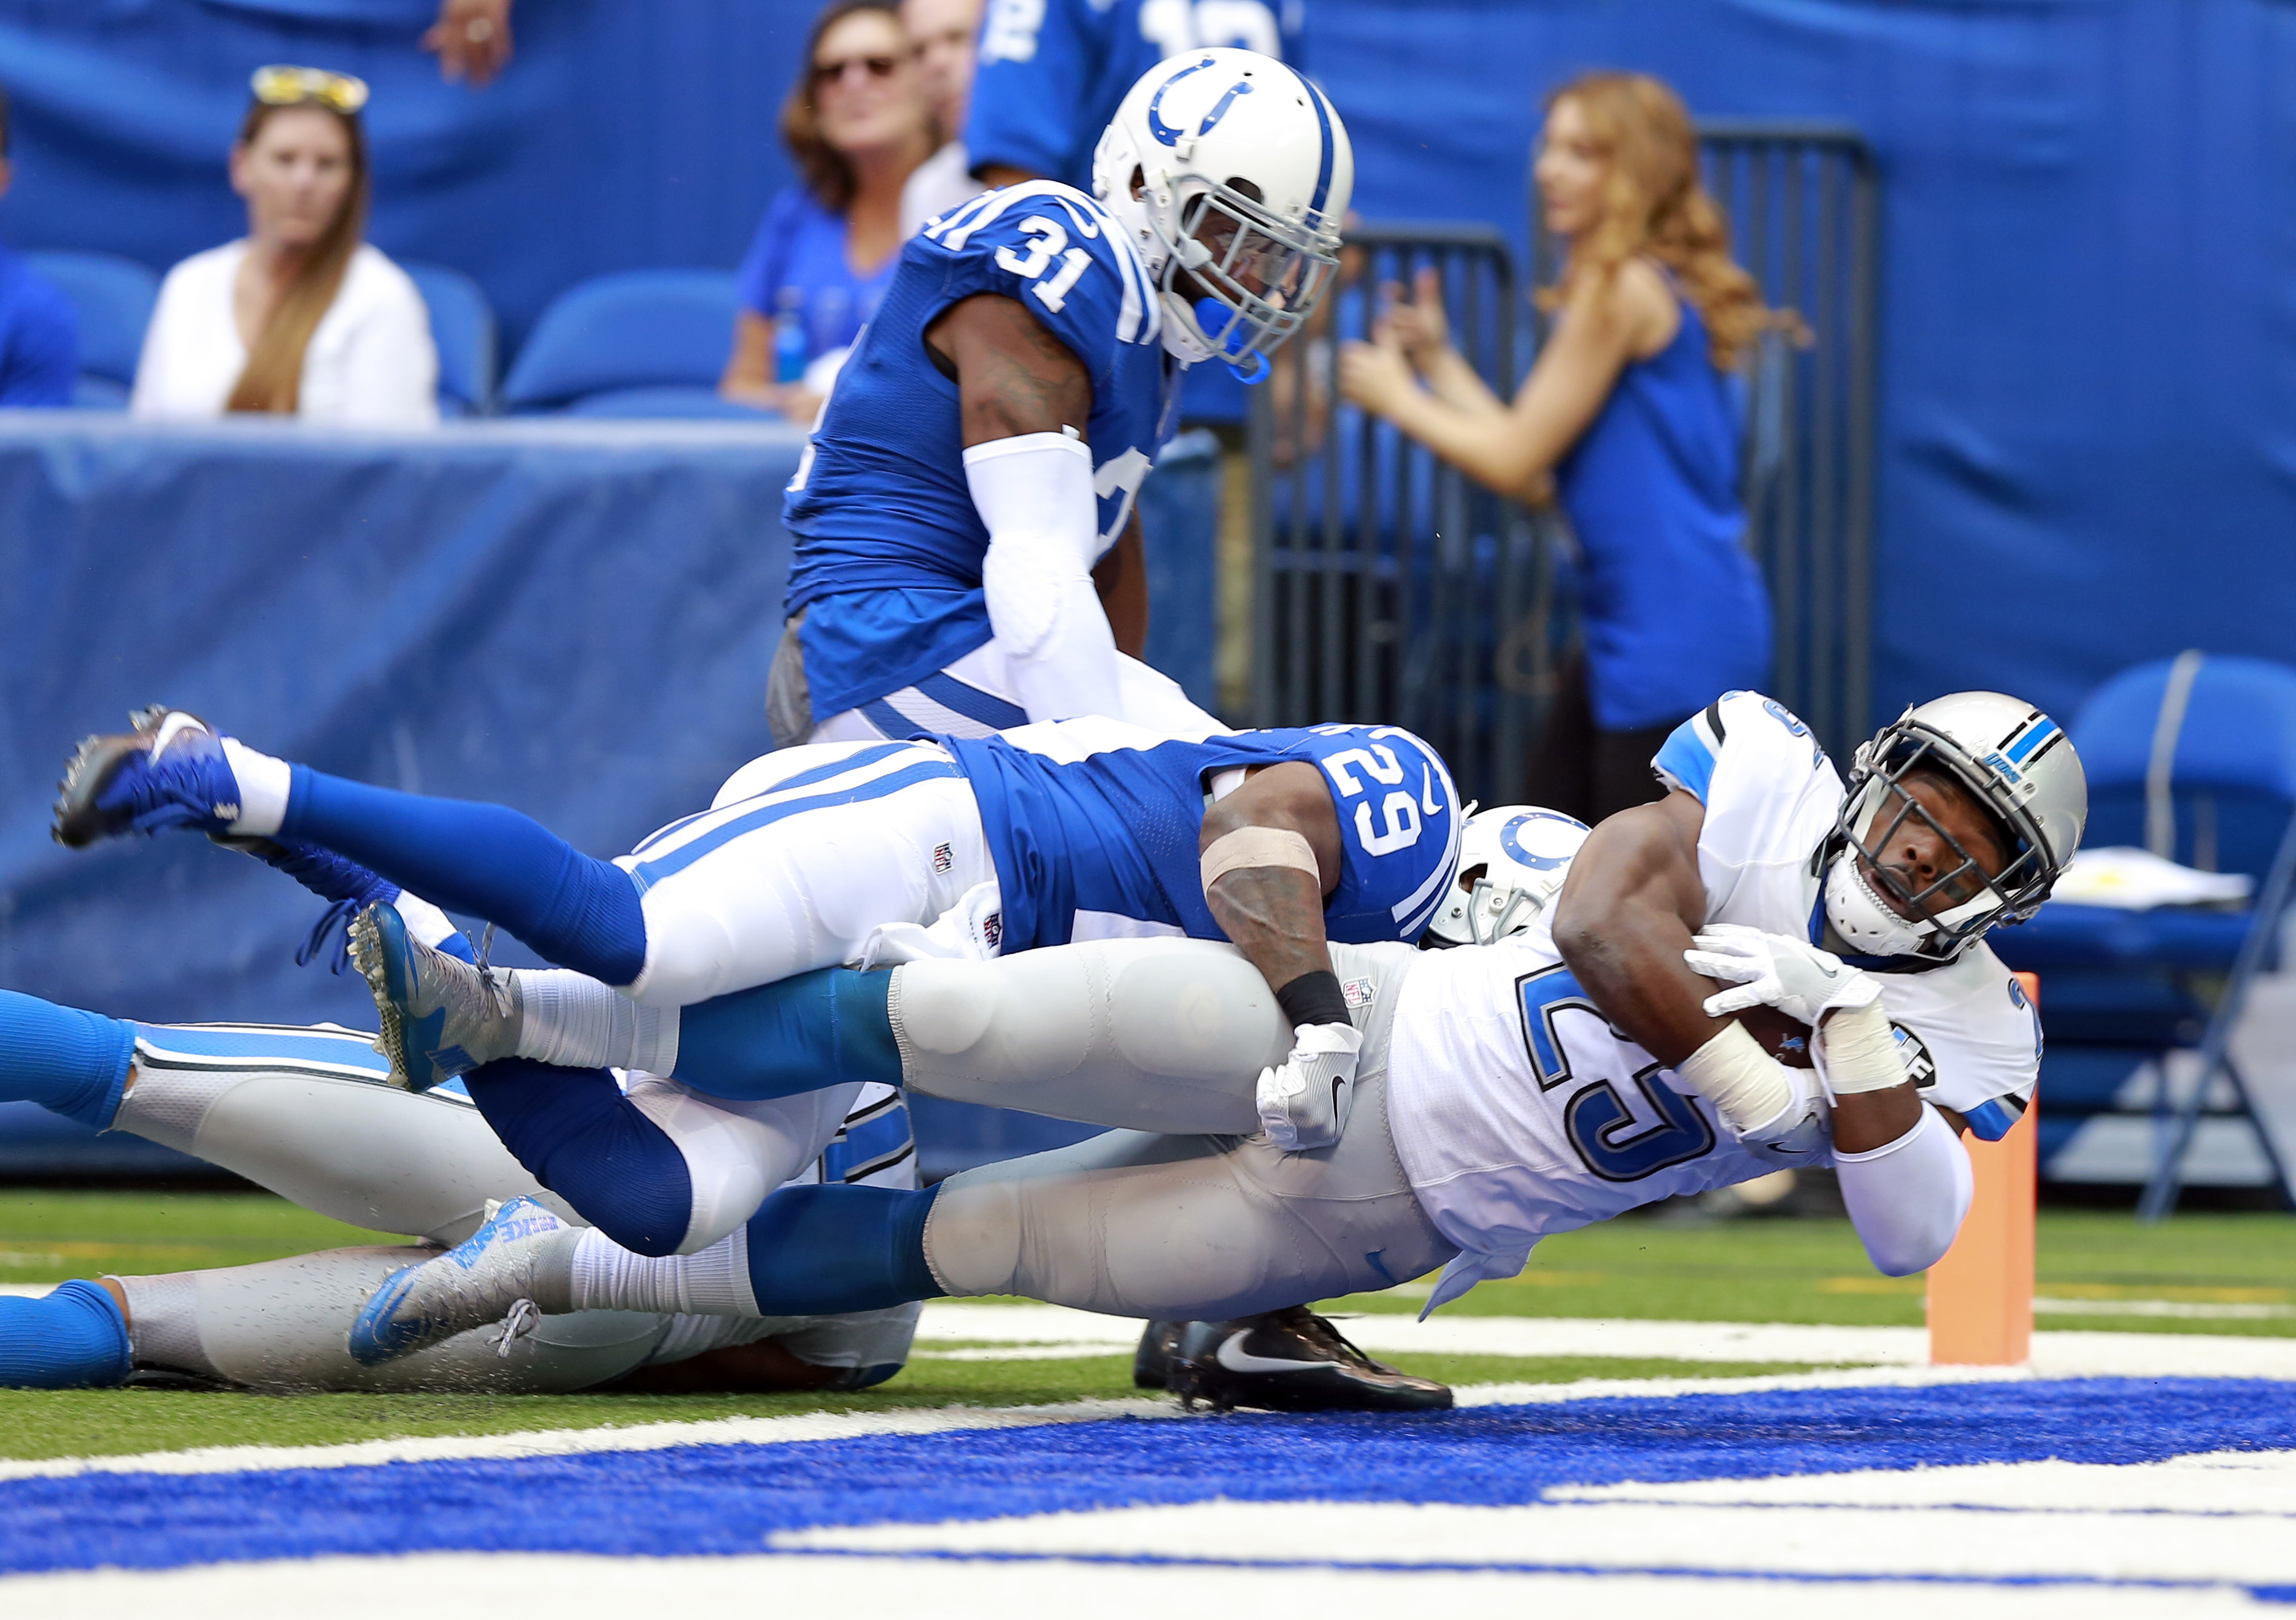 Detroit Lions running back Theo Riddick (25) dives in for a touchdown as he's tackled by Indianapolis Colts strong safety Mike Adams (29) against the Indianapolis Colts during the first half of an NFL football game in Indianapolis, Sunday, Sept. 11, 2016.